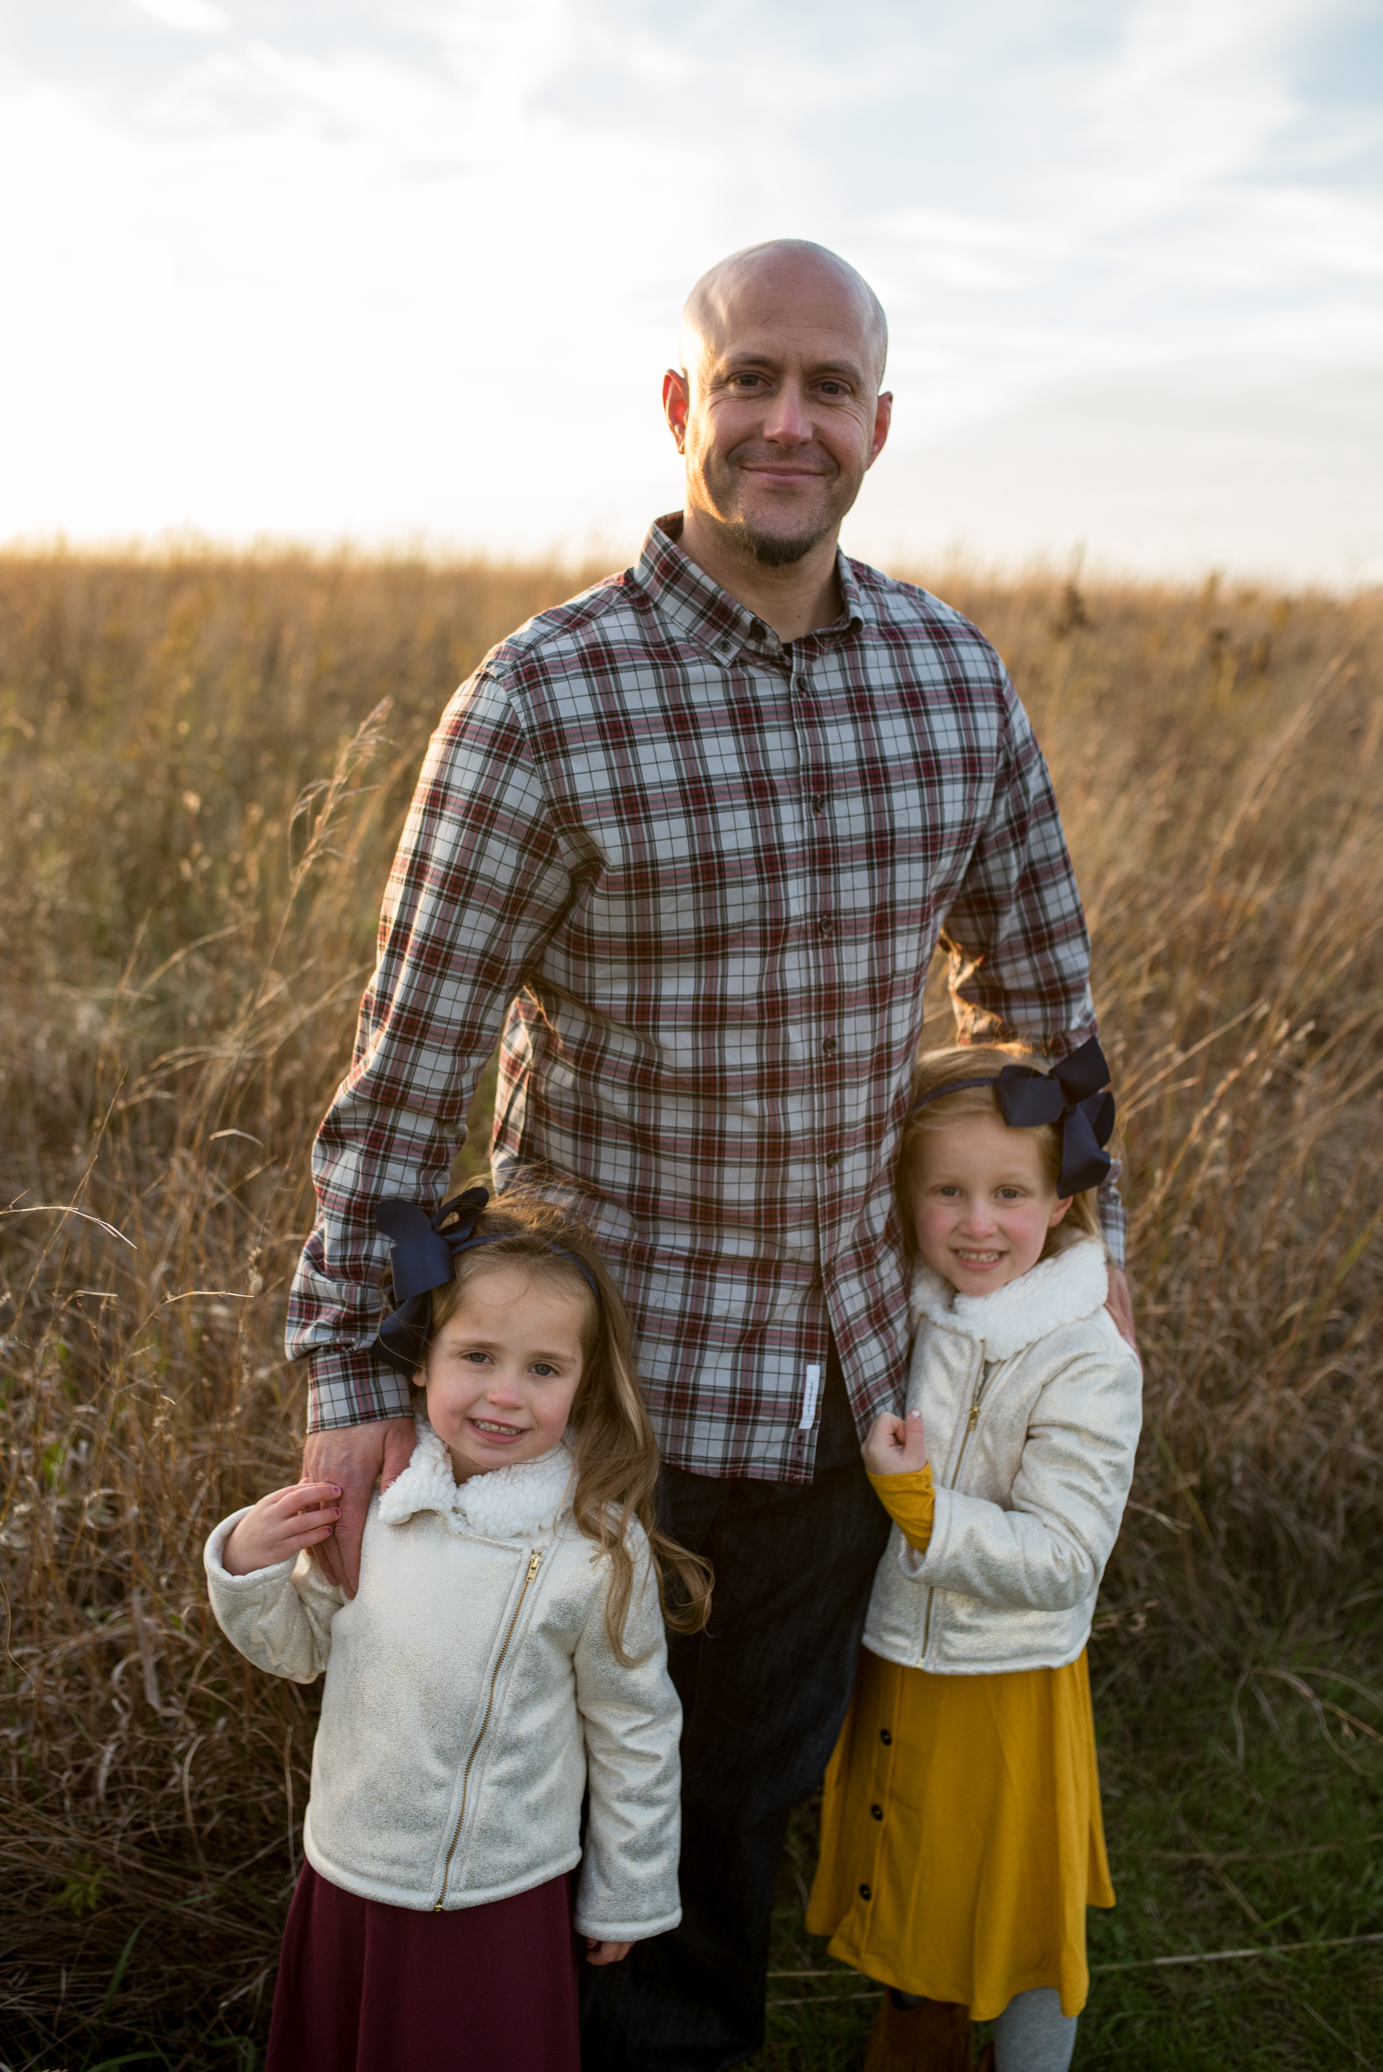 Dad posing and smiling with arms around his two daughters during a Waukesha Photography session